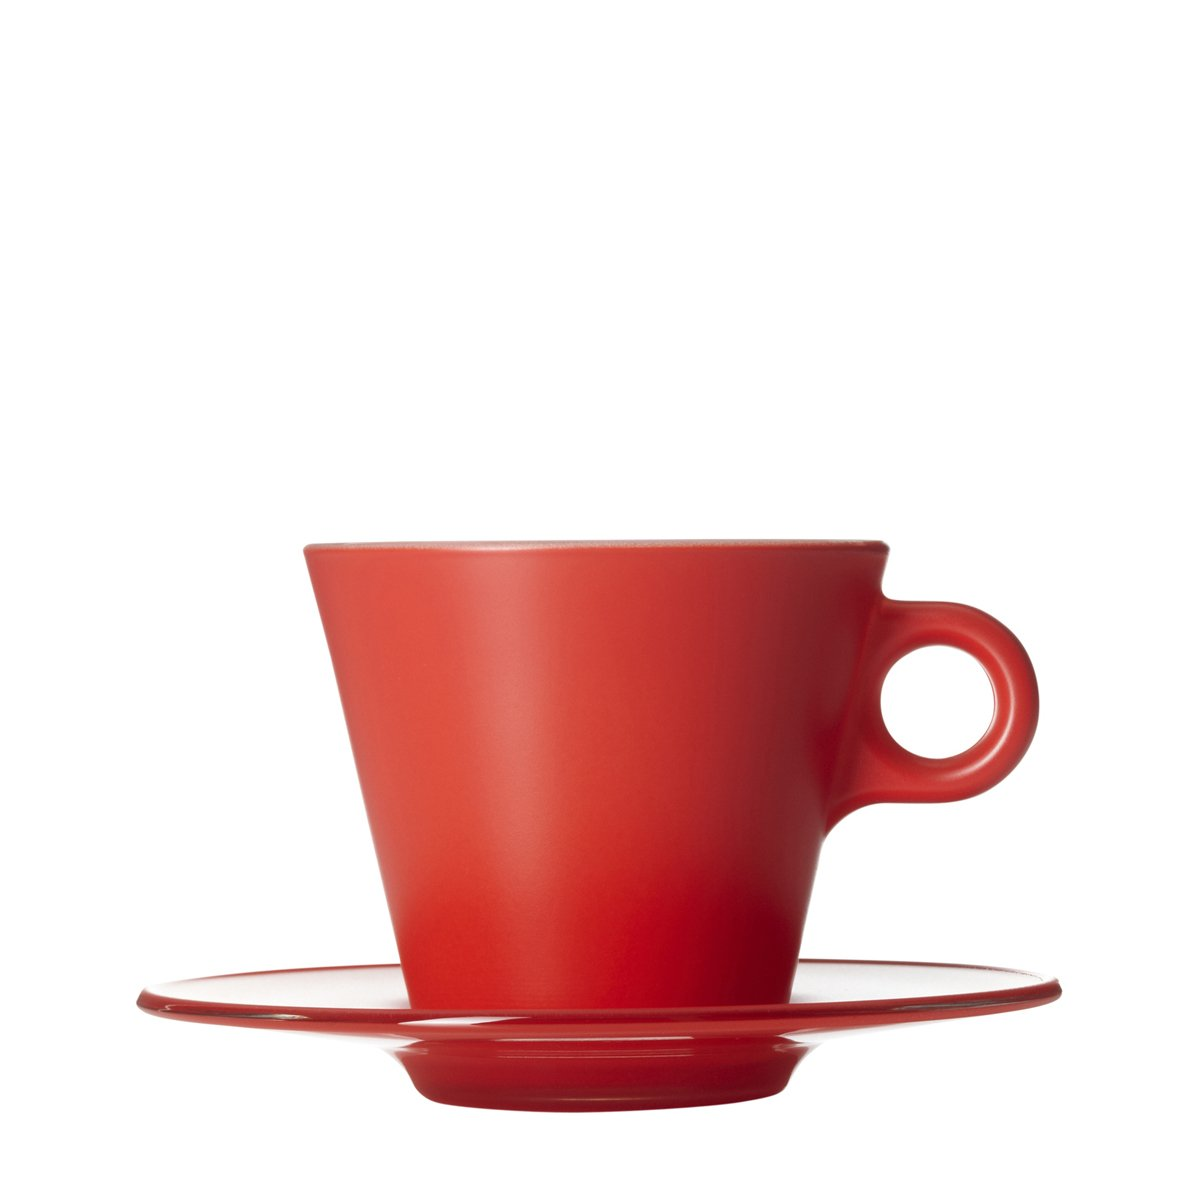 Leonardo Translated 012272 Ooh Magico Color Cup New life Re Cappuccino Set Changing